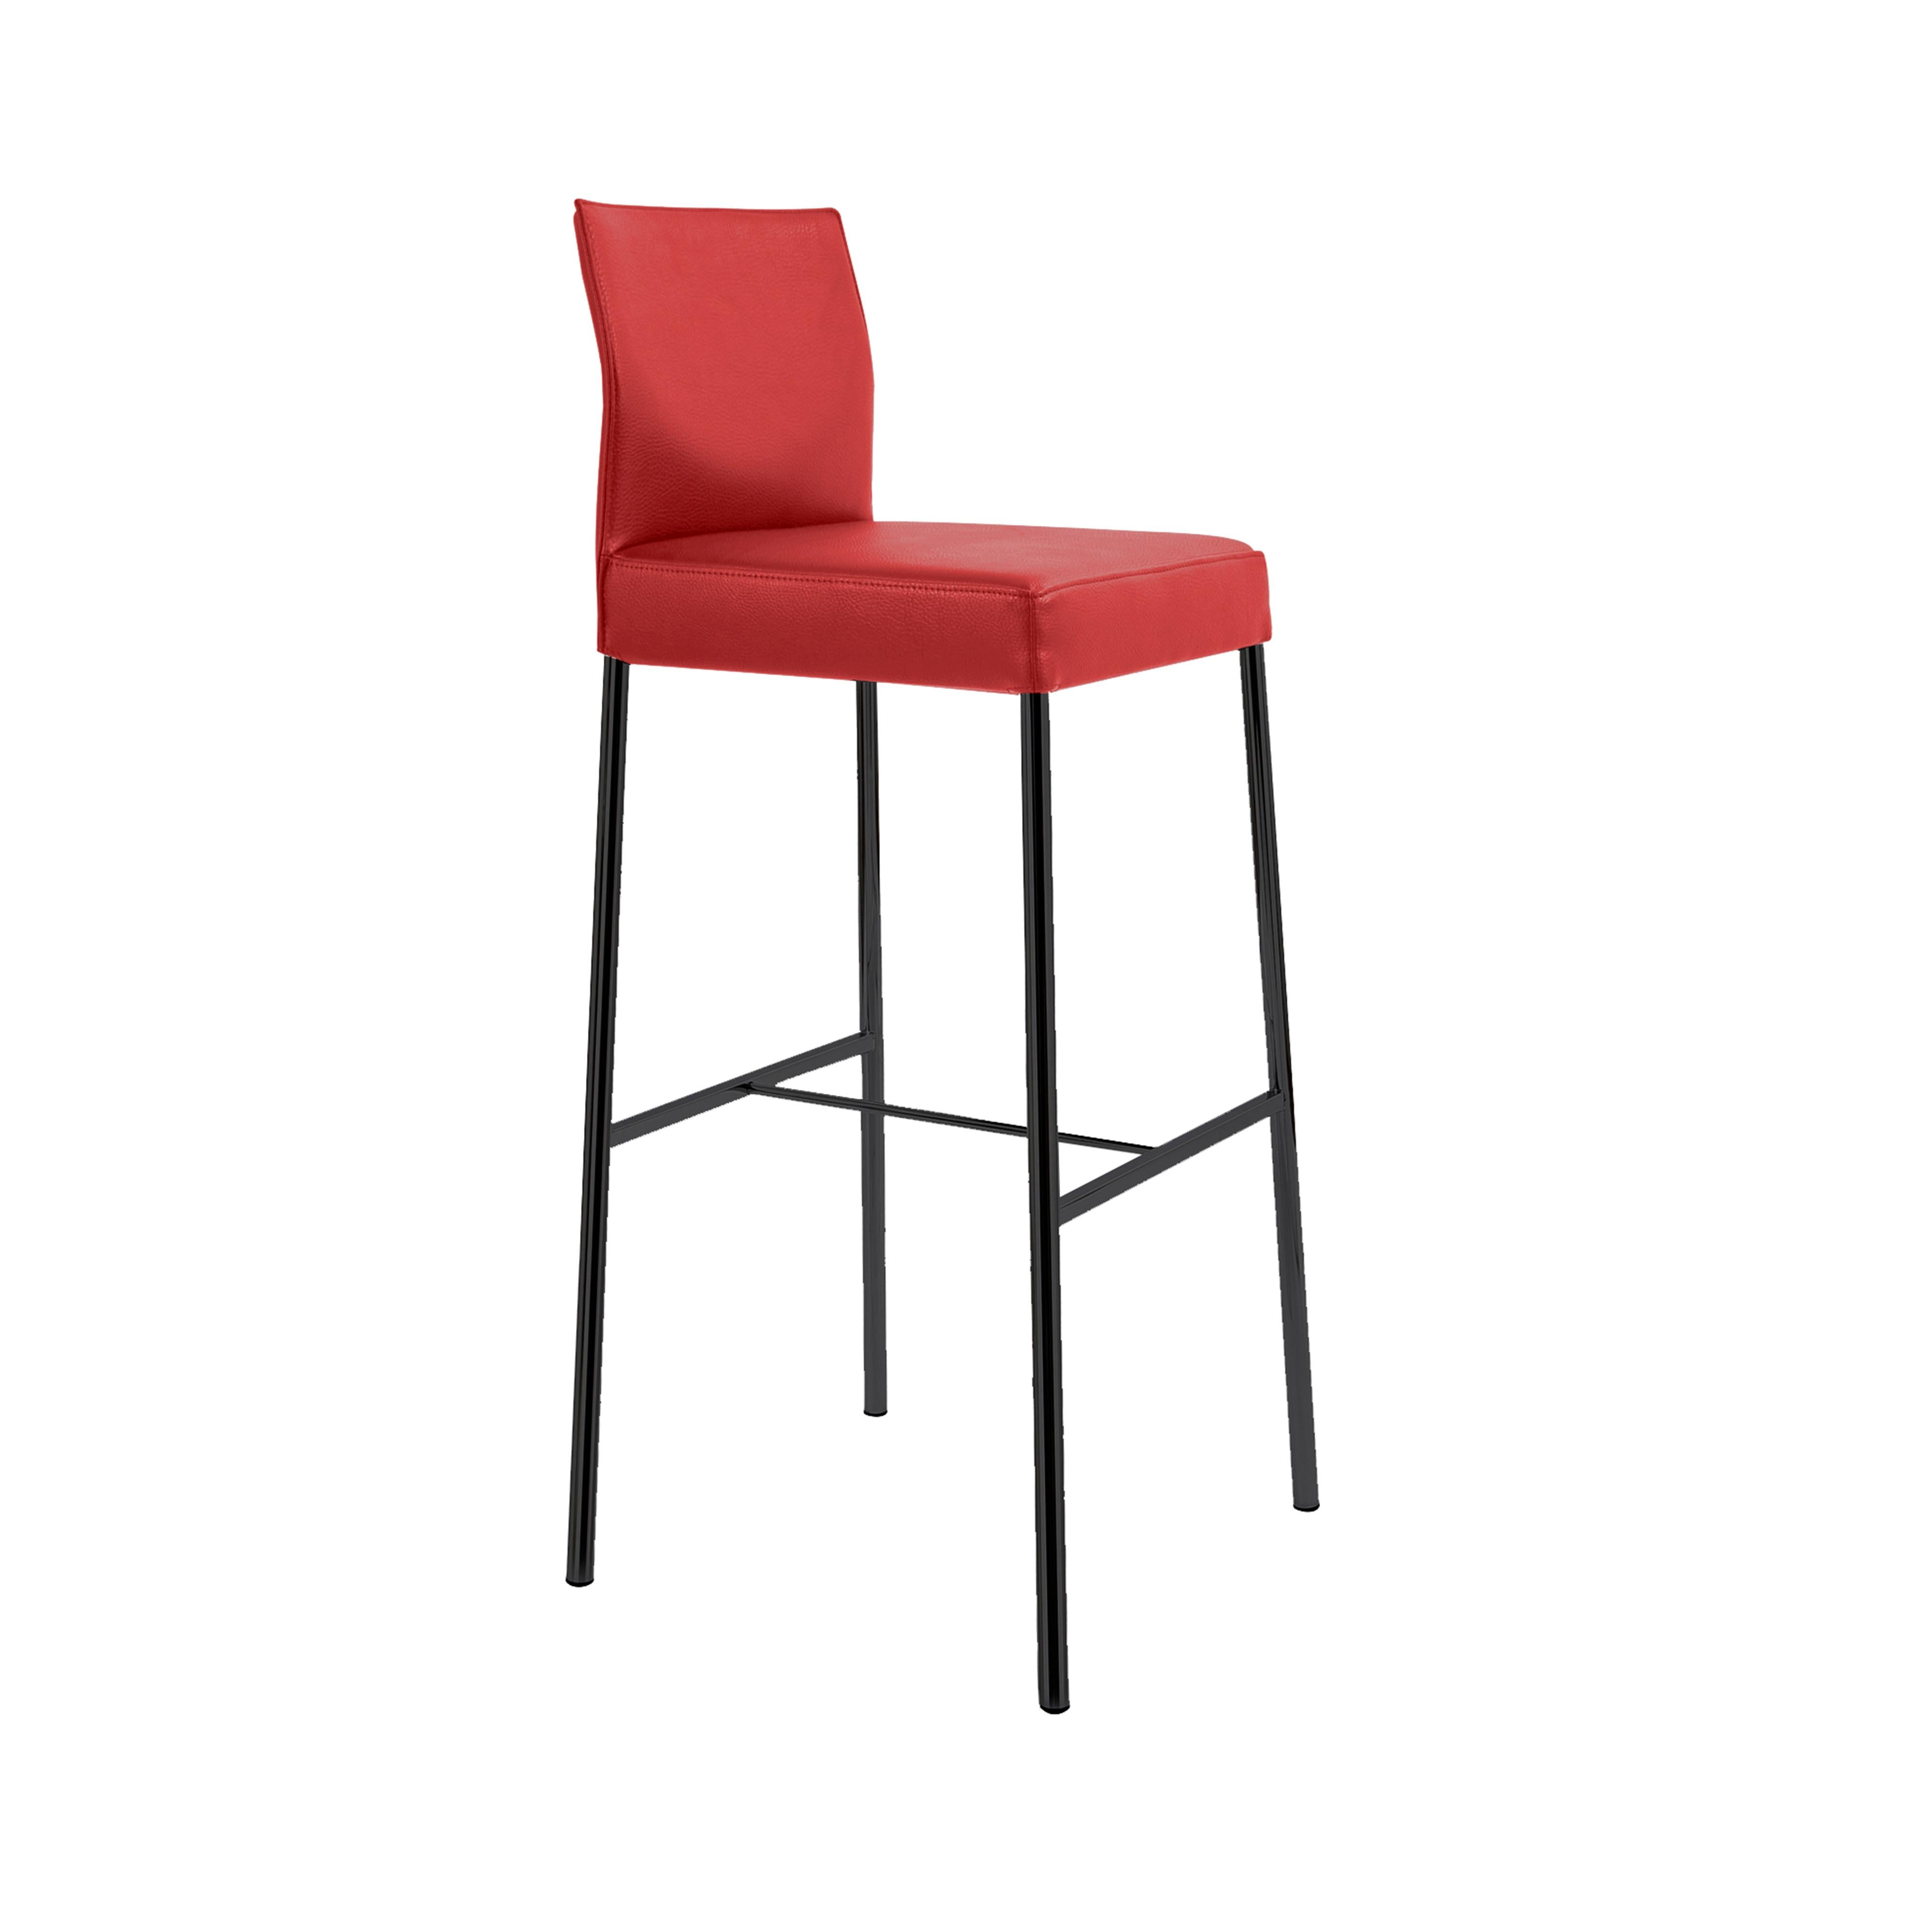 GLOOH Bar Stool in Red Leather by KFF